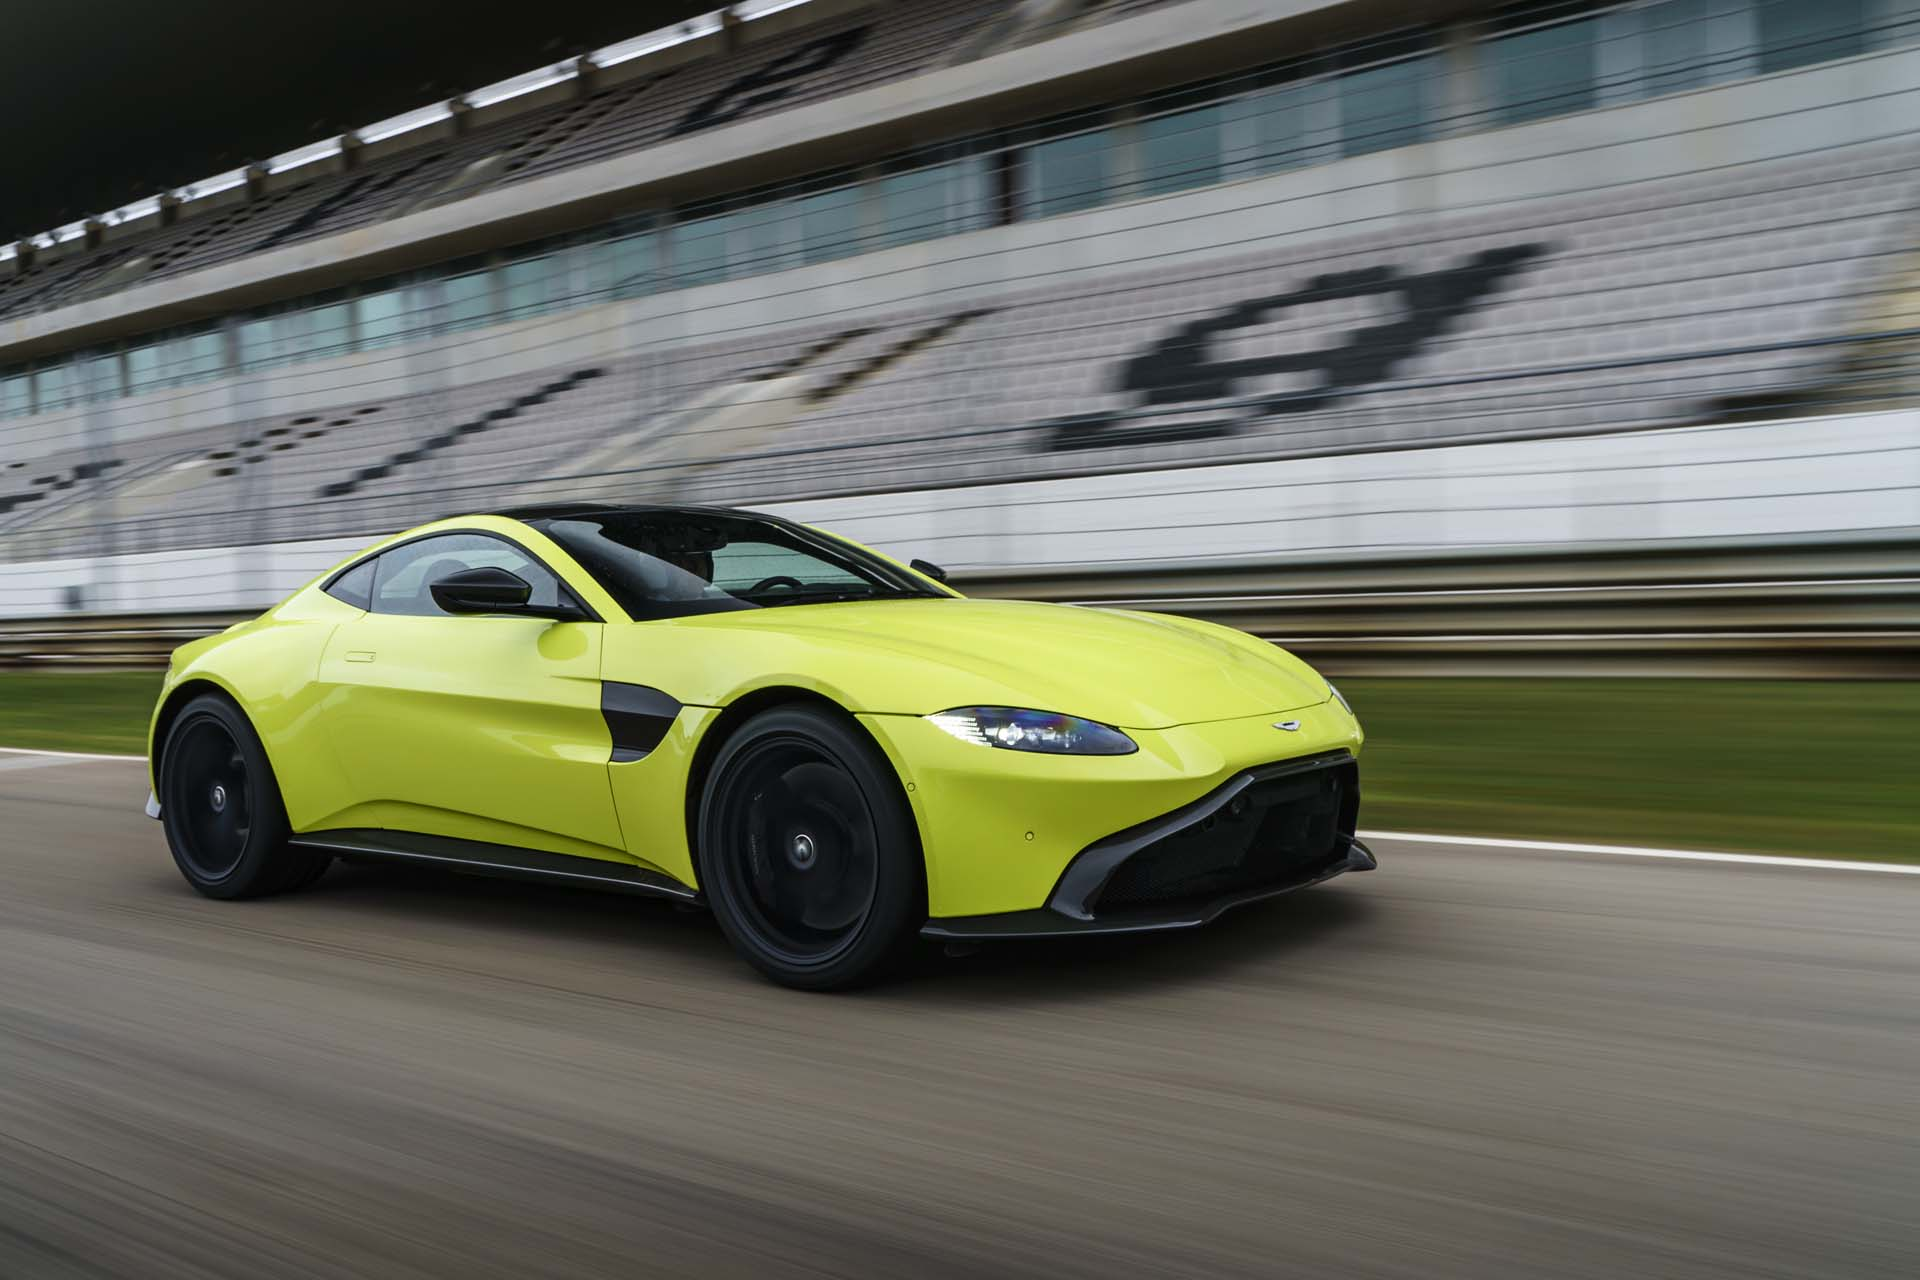 Aston Martin Vantage First Drive Review Tilting At Windmills - Aston martin vantage review